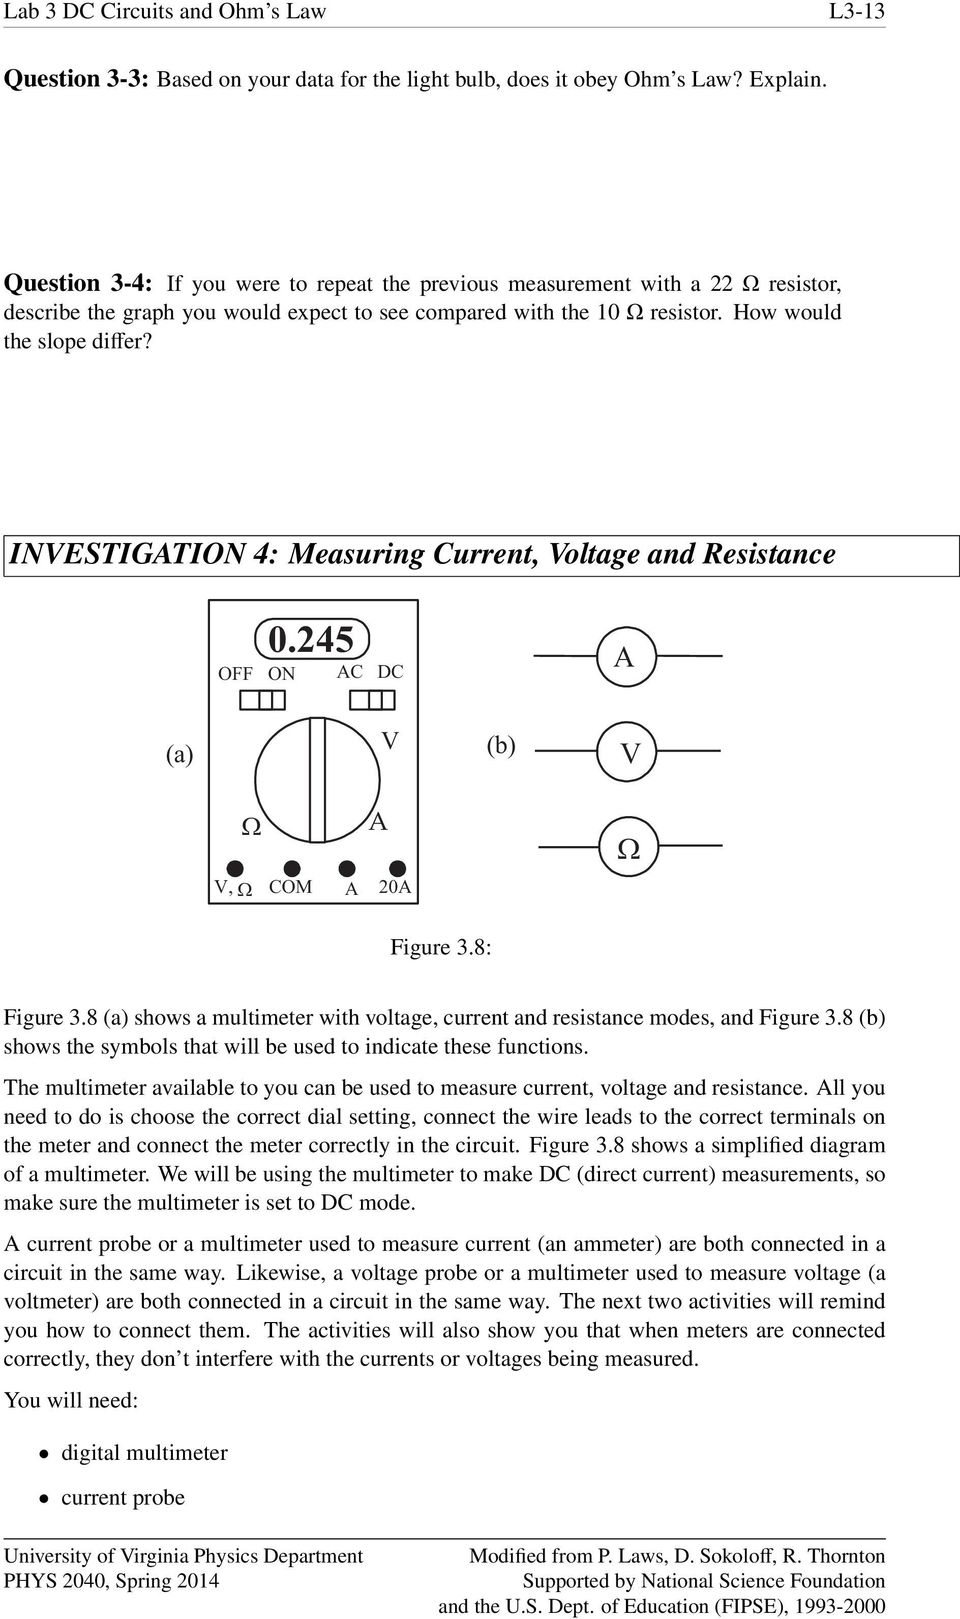 INESTIGATION 4: Measuring Current, oltage and Resistance OFF ON 0.245 AC DC A (a) (b), COM A A 20A Figure 3.8: Figure 3.